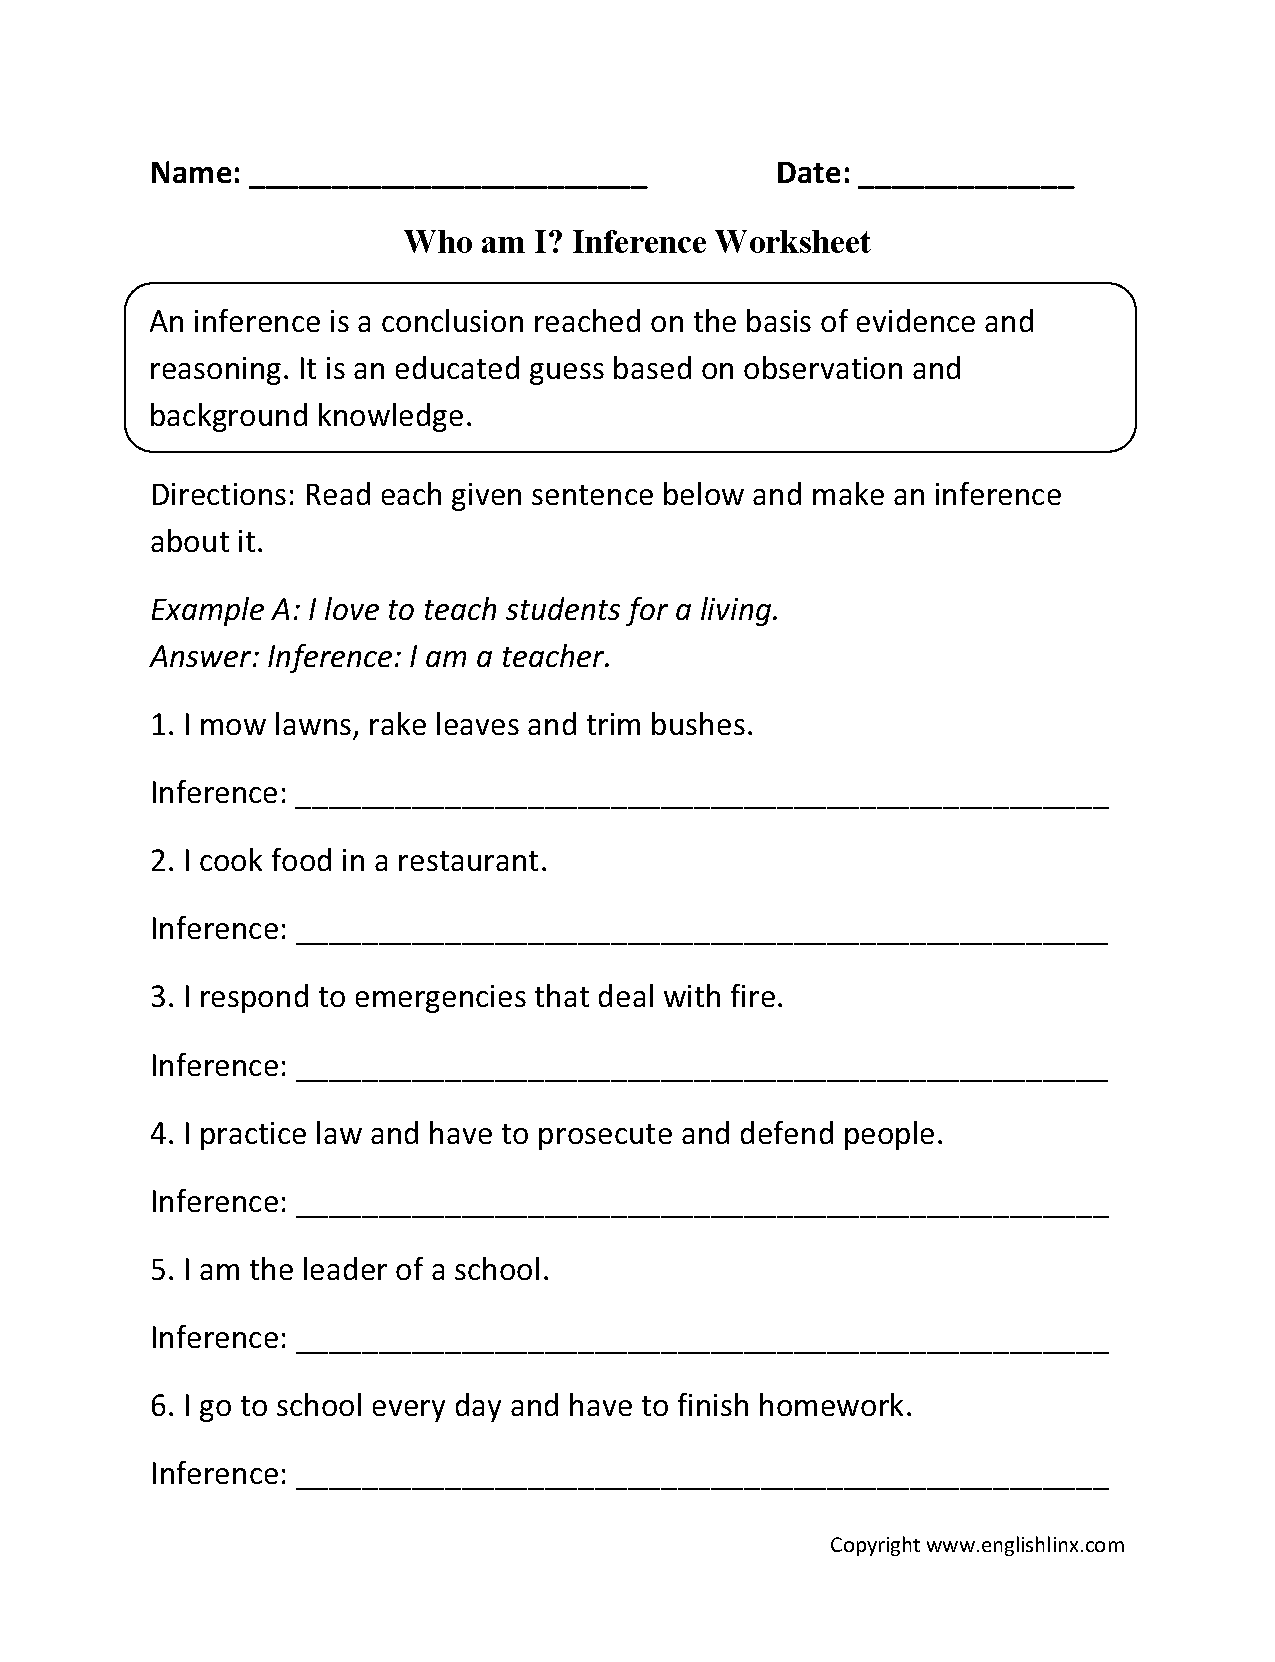 Worksheets Making Inferences Worksheet inference worksheets who am i worksheets